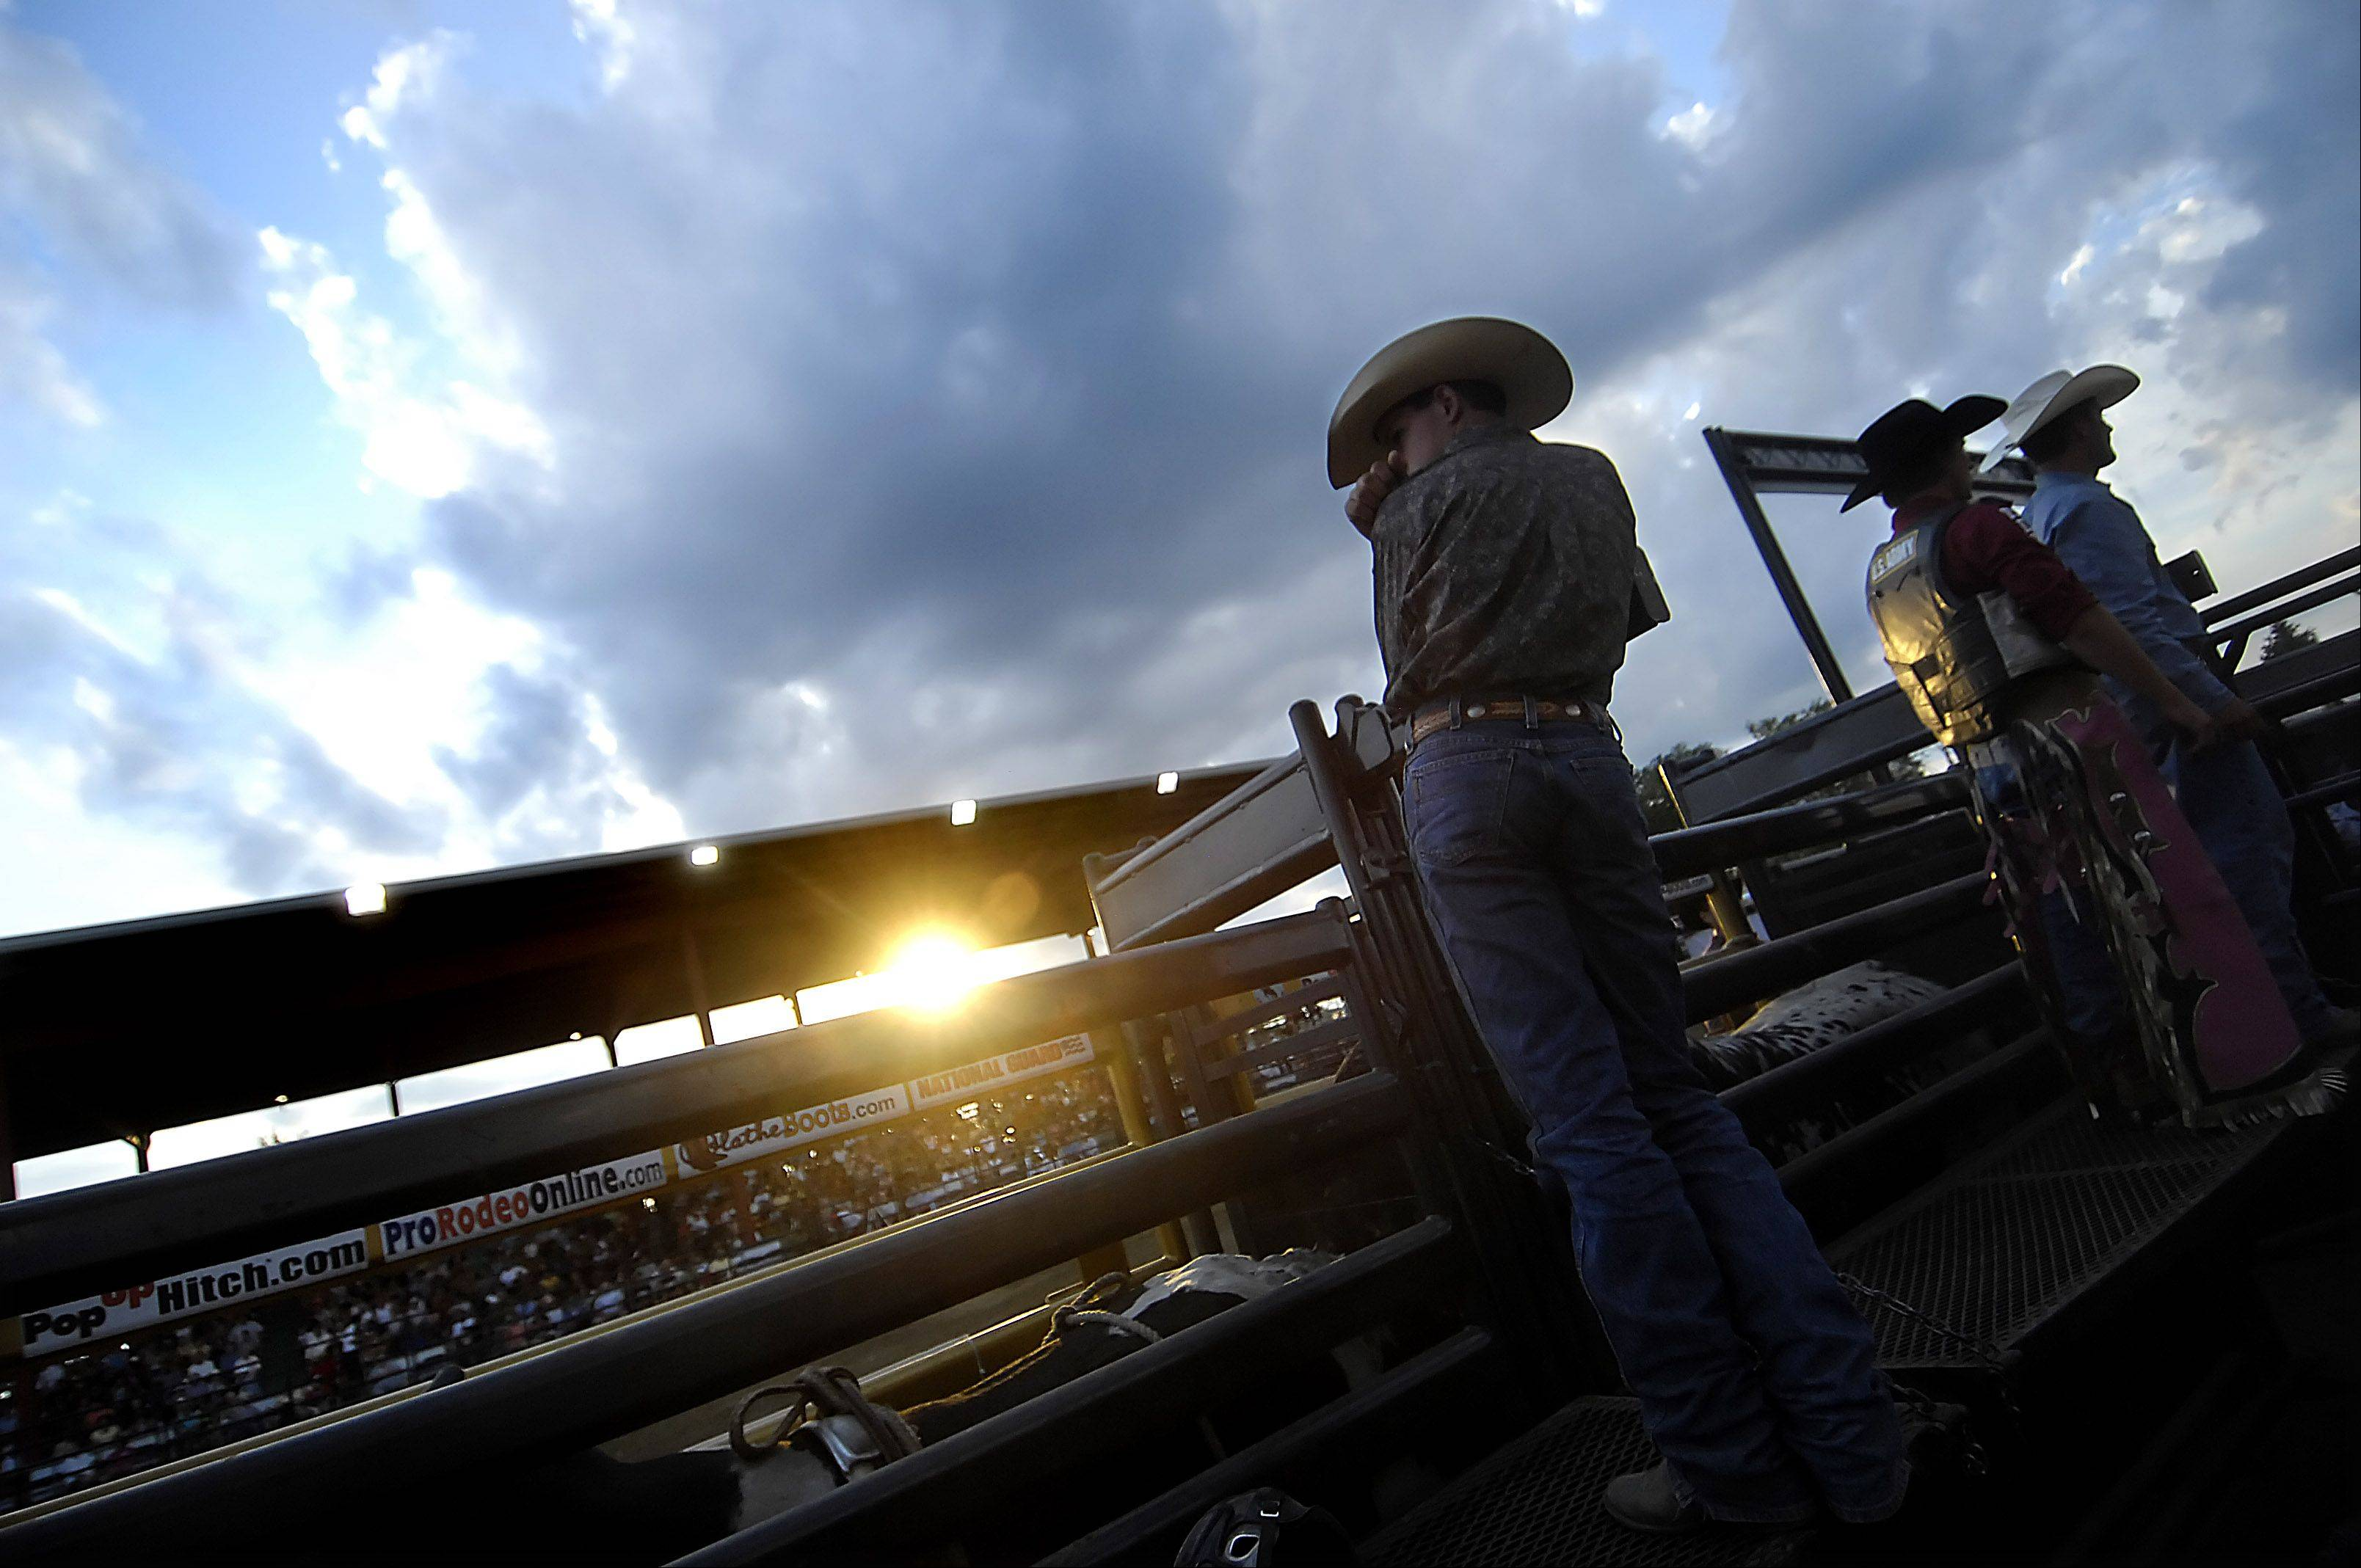 Cowboys stand on the chutes just before the start of the Championship Bull Riding event at the Kane County Fair.